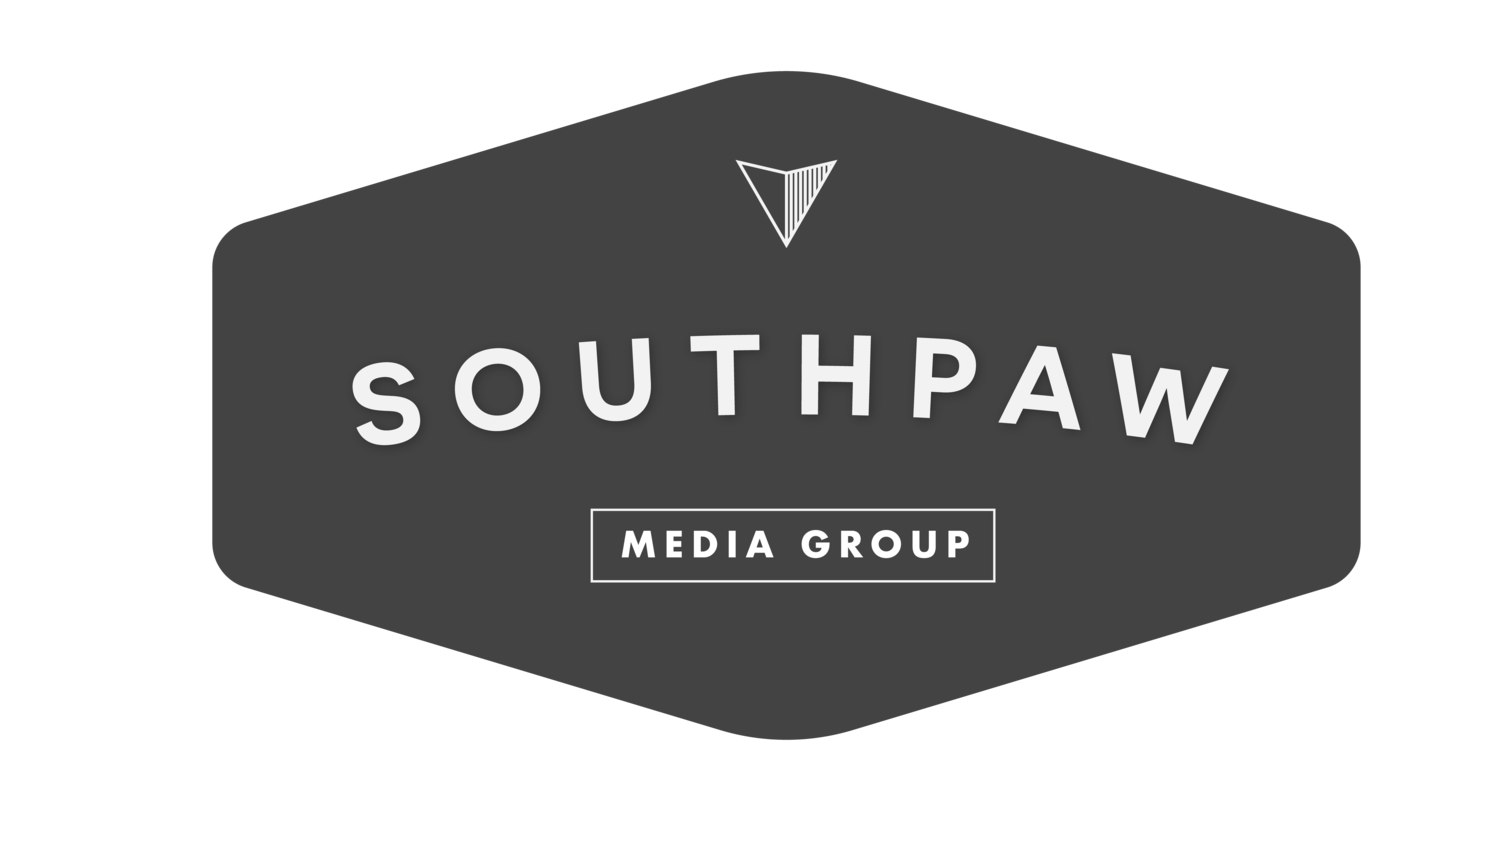 SouthPaw Media Group